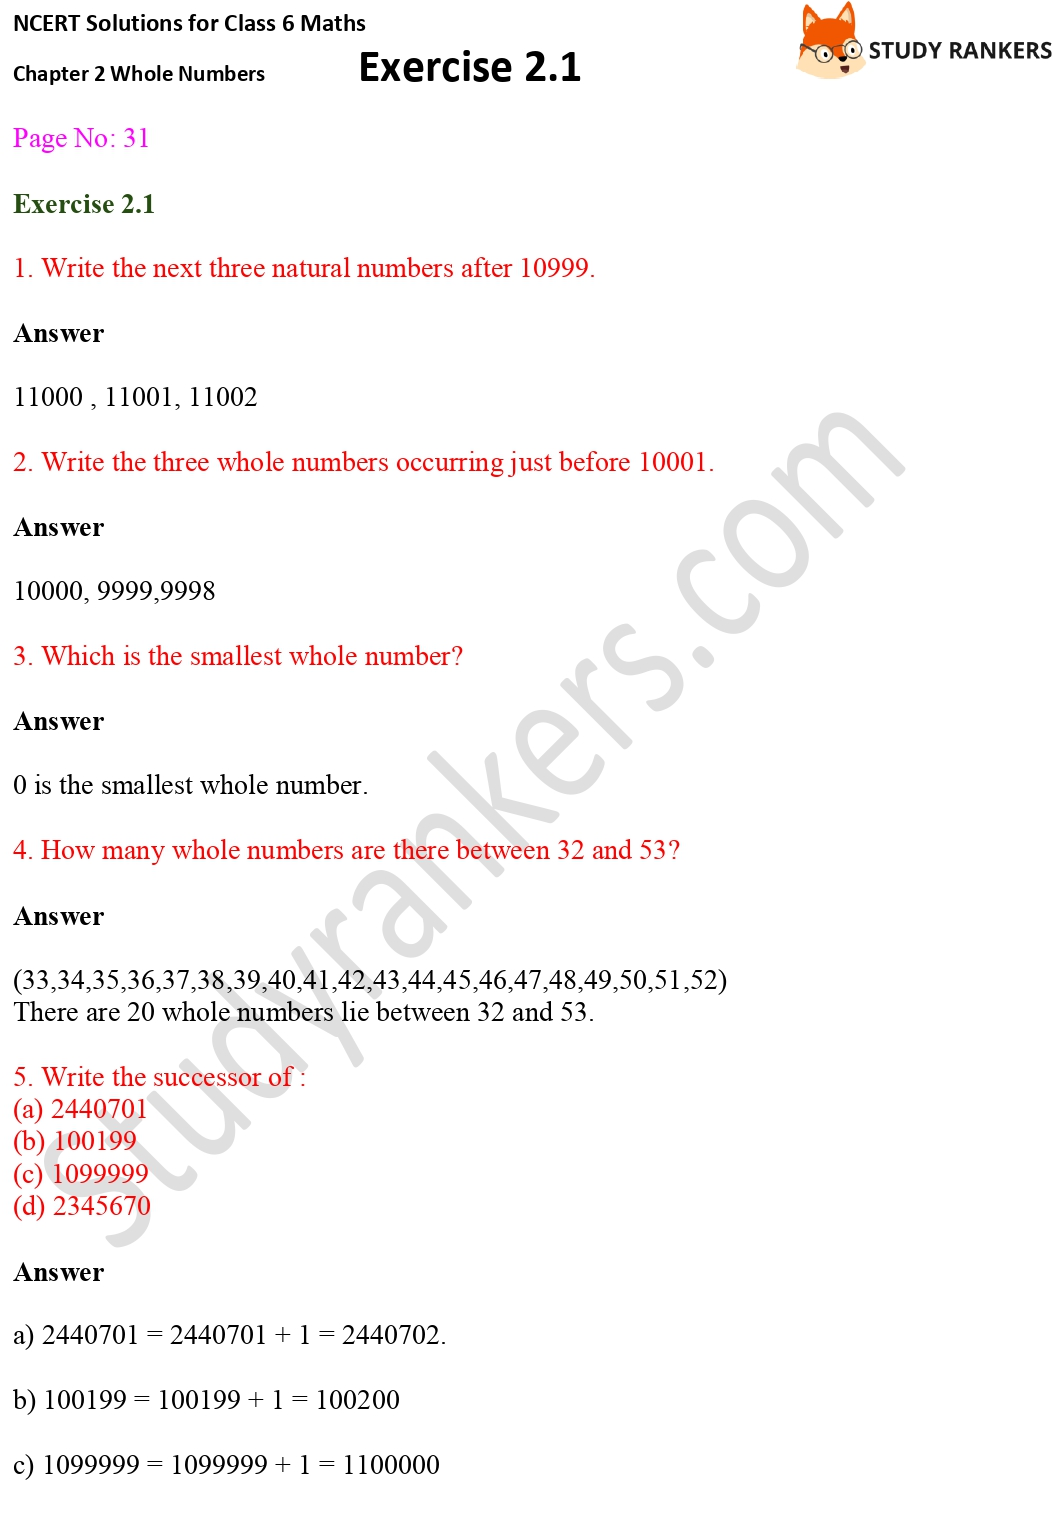 NCERT Solutions for Class 6 Maths Chapter 2 Whole Numbers Exercise 2.1 Part 1